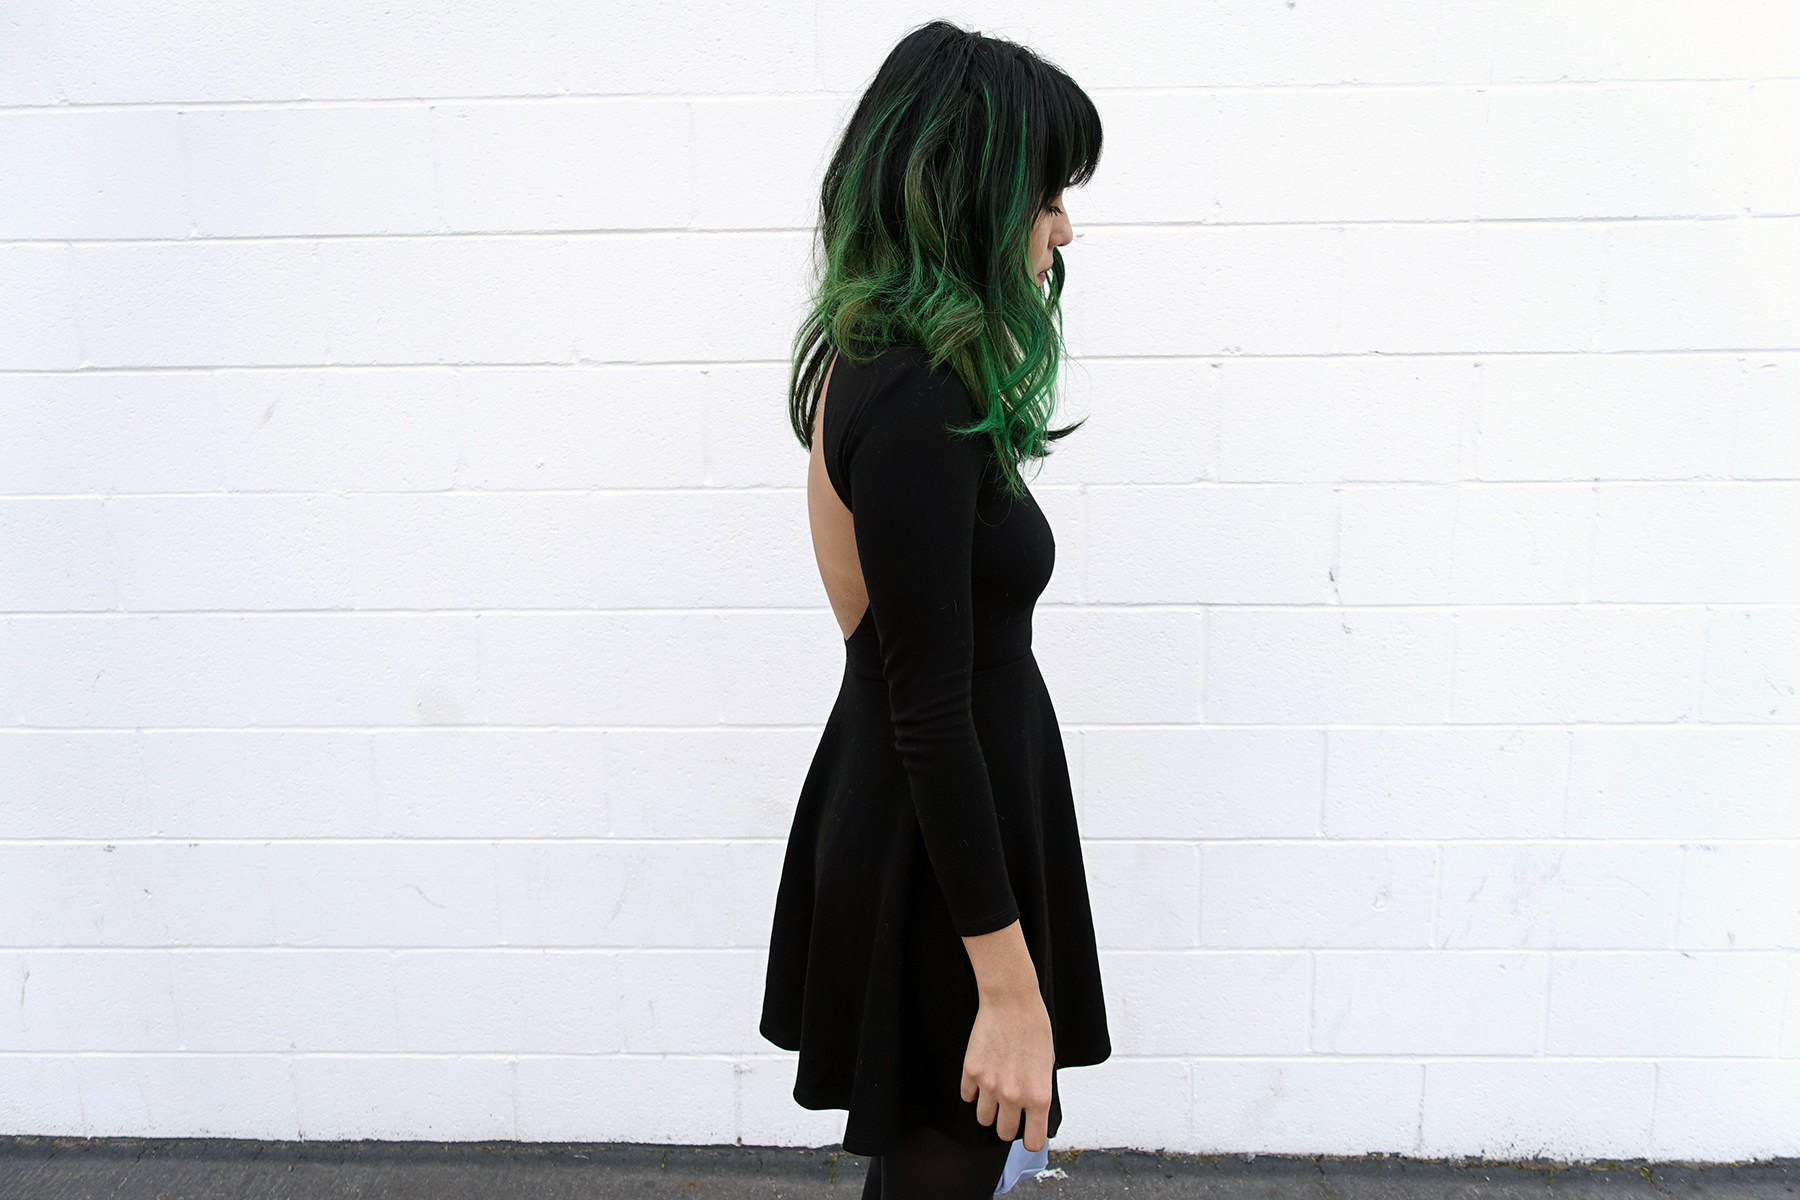 American Apparel skater backless dress, Green hair, Kara lavender powder blue backpack